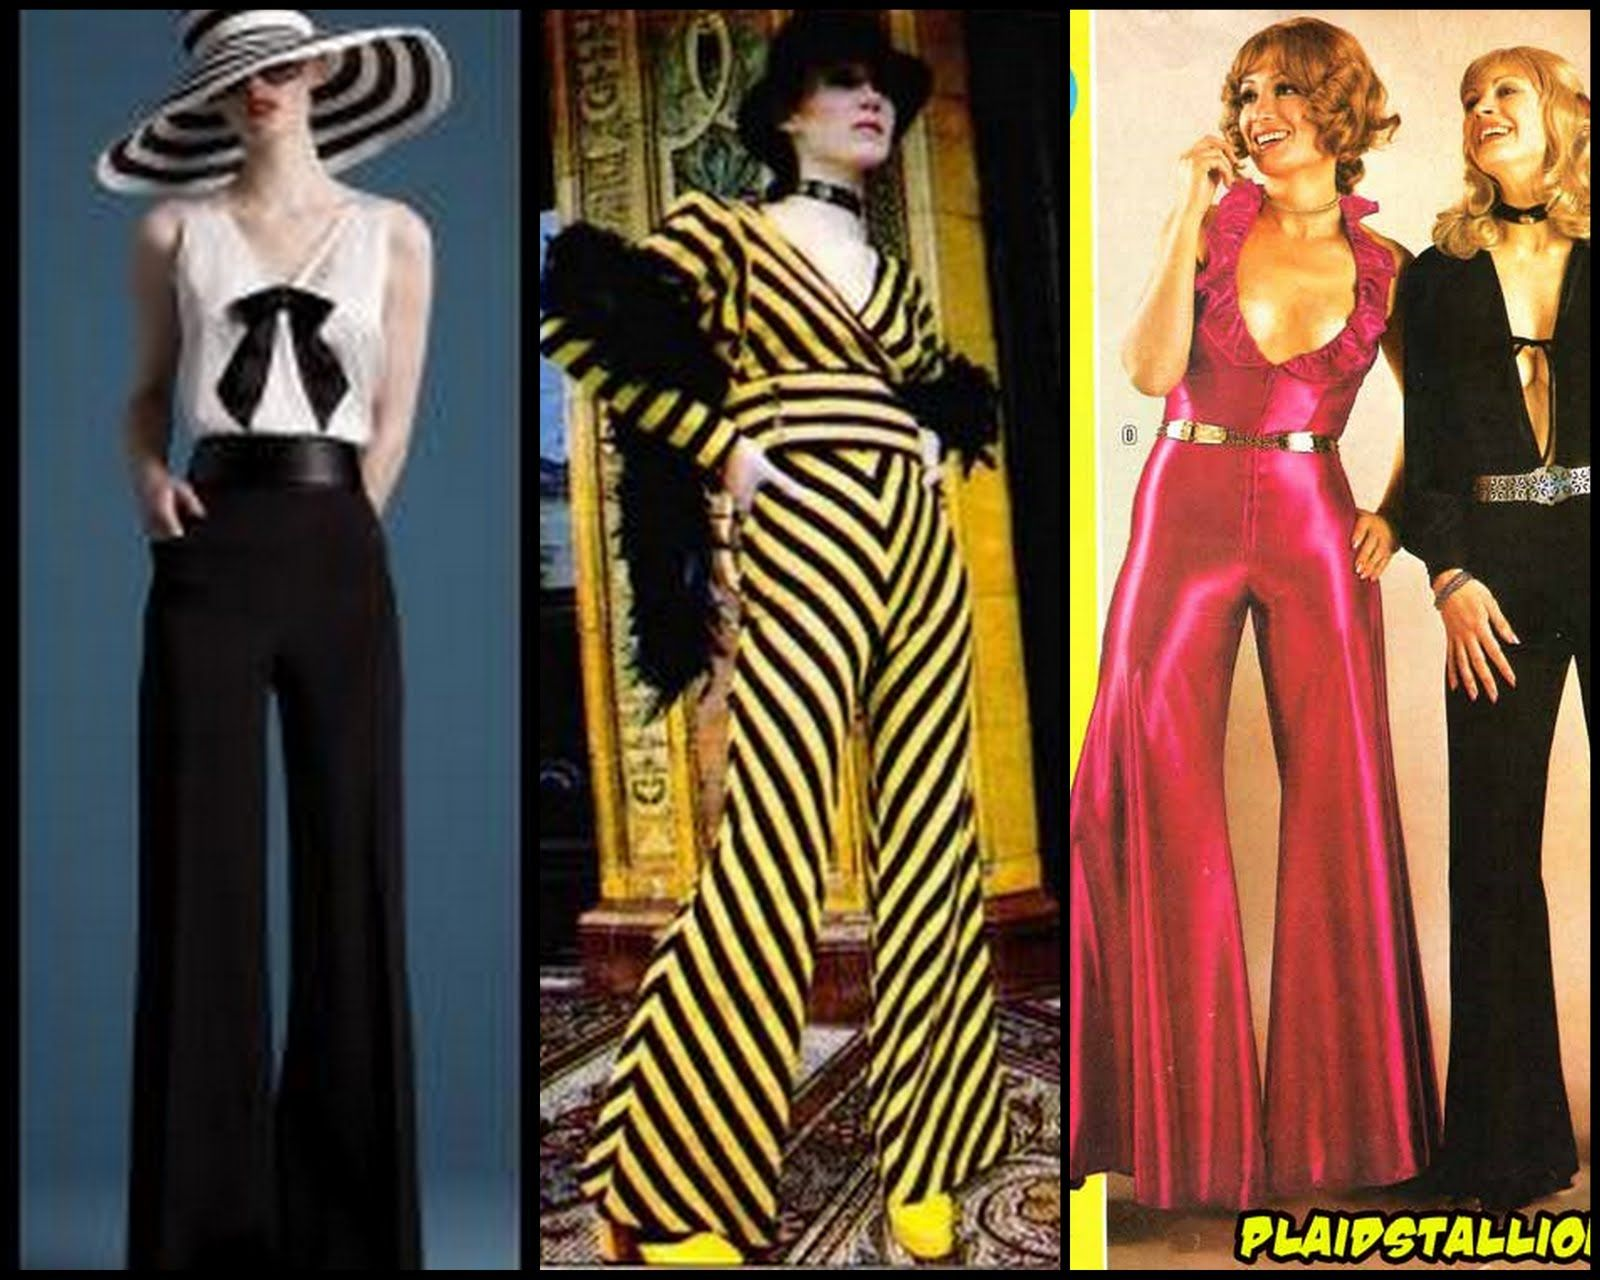 Best 25 70s Disco Fashion Ideas On Pinterest Disco Fashion Studio 54 Fashion And Studio 54